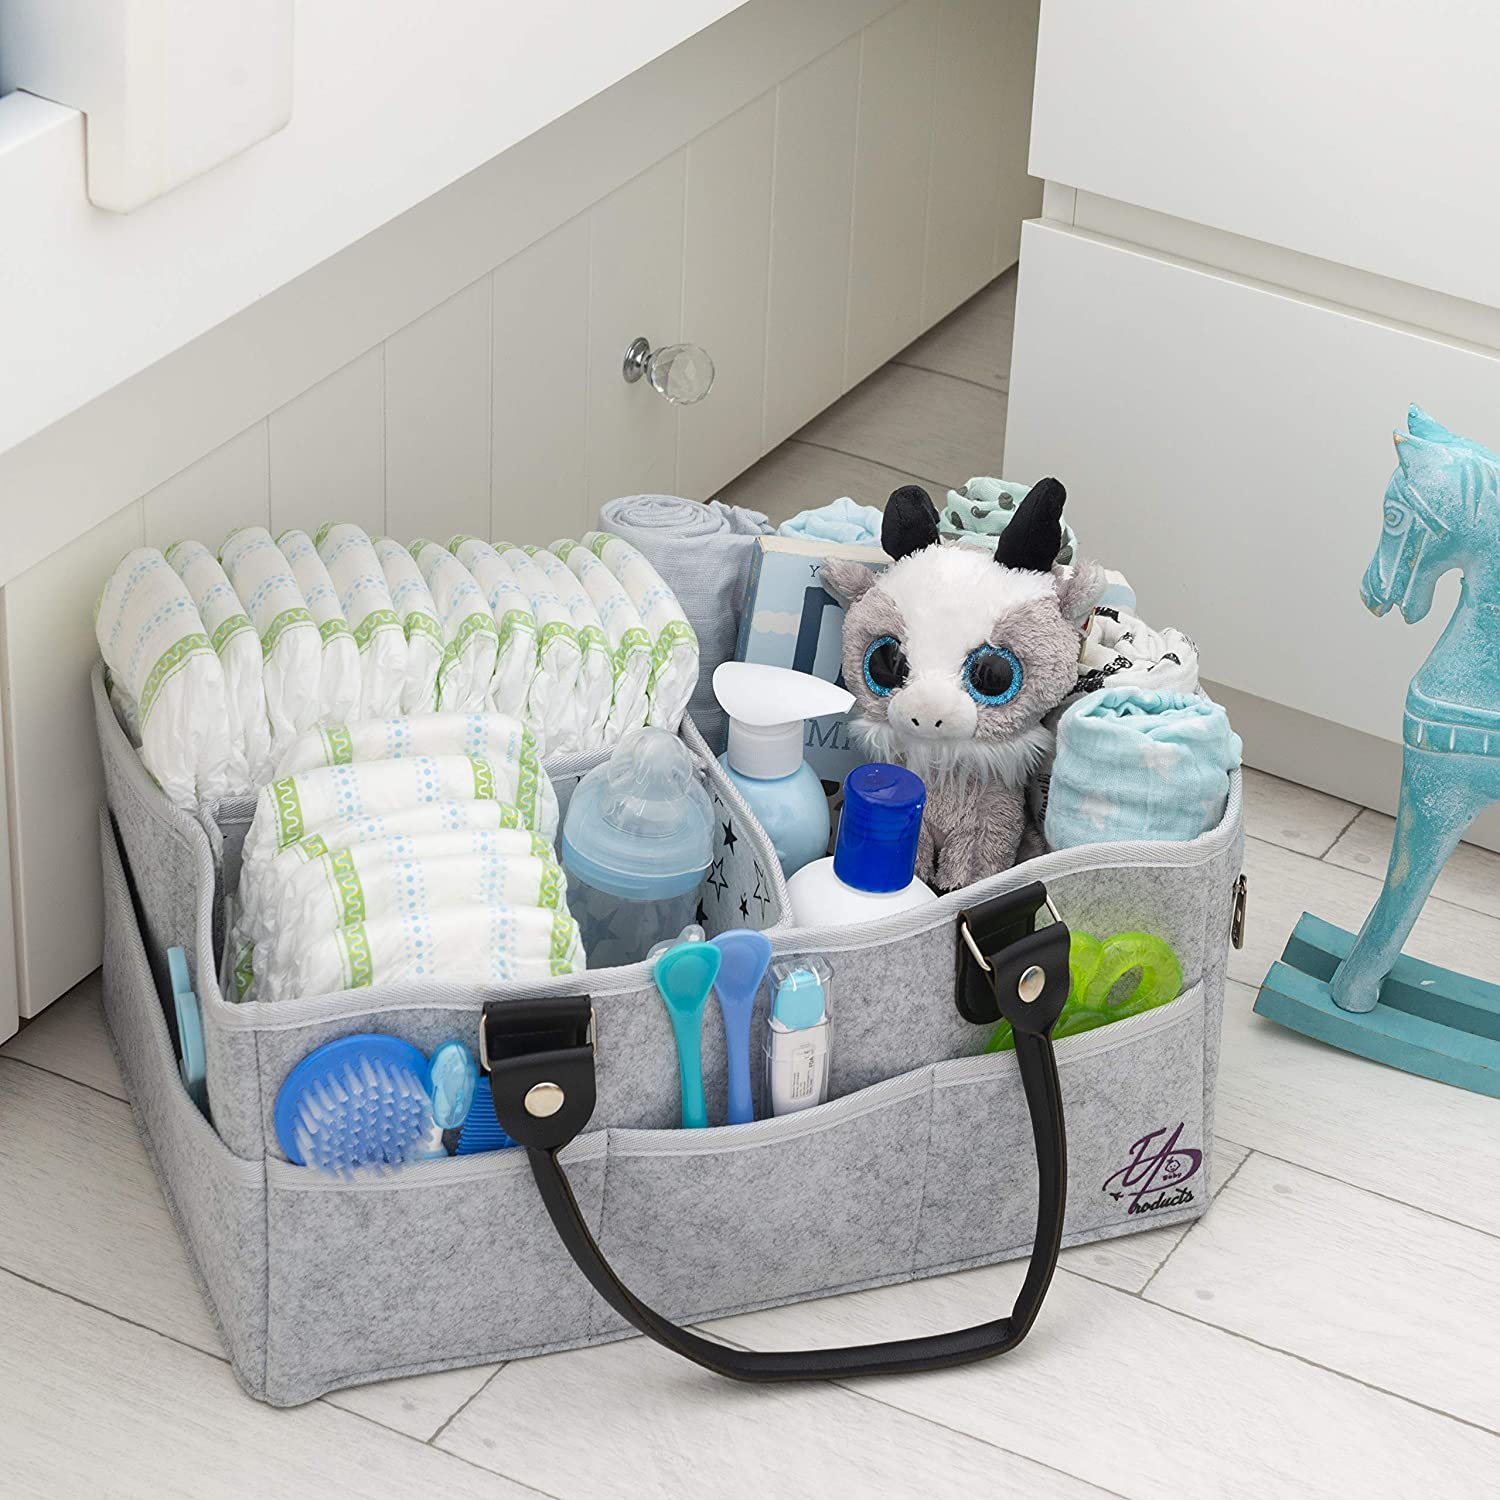 Baby Diaper Caddy Organizer Bag for Changing Table / Storage / Portable Nursery Basket | X-Large (16x11x7 inches) | 3 Inner sections 8 Pockets | Sturdy | Unisex | Gray | Bonus 2 Bibs, 2 Pacifier Clips 91cZc2BoESzL